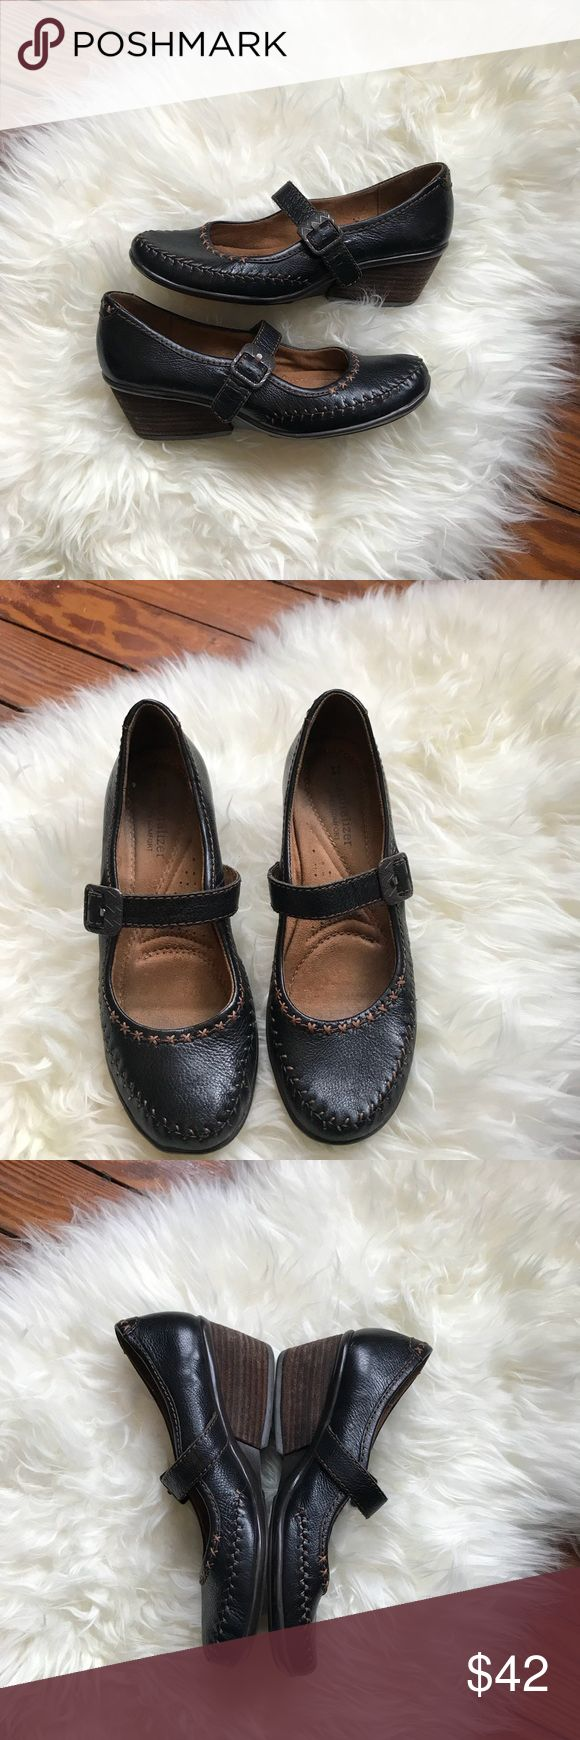 Naturalizer Pebbled Leather Wedge Mary Jane Flats Naturalizer Pebbled Leather Wedge Mary Jane Flats. Size 7. Brown in color. Very EUC. Naturalizer Shoes Flats & Loafers